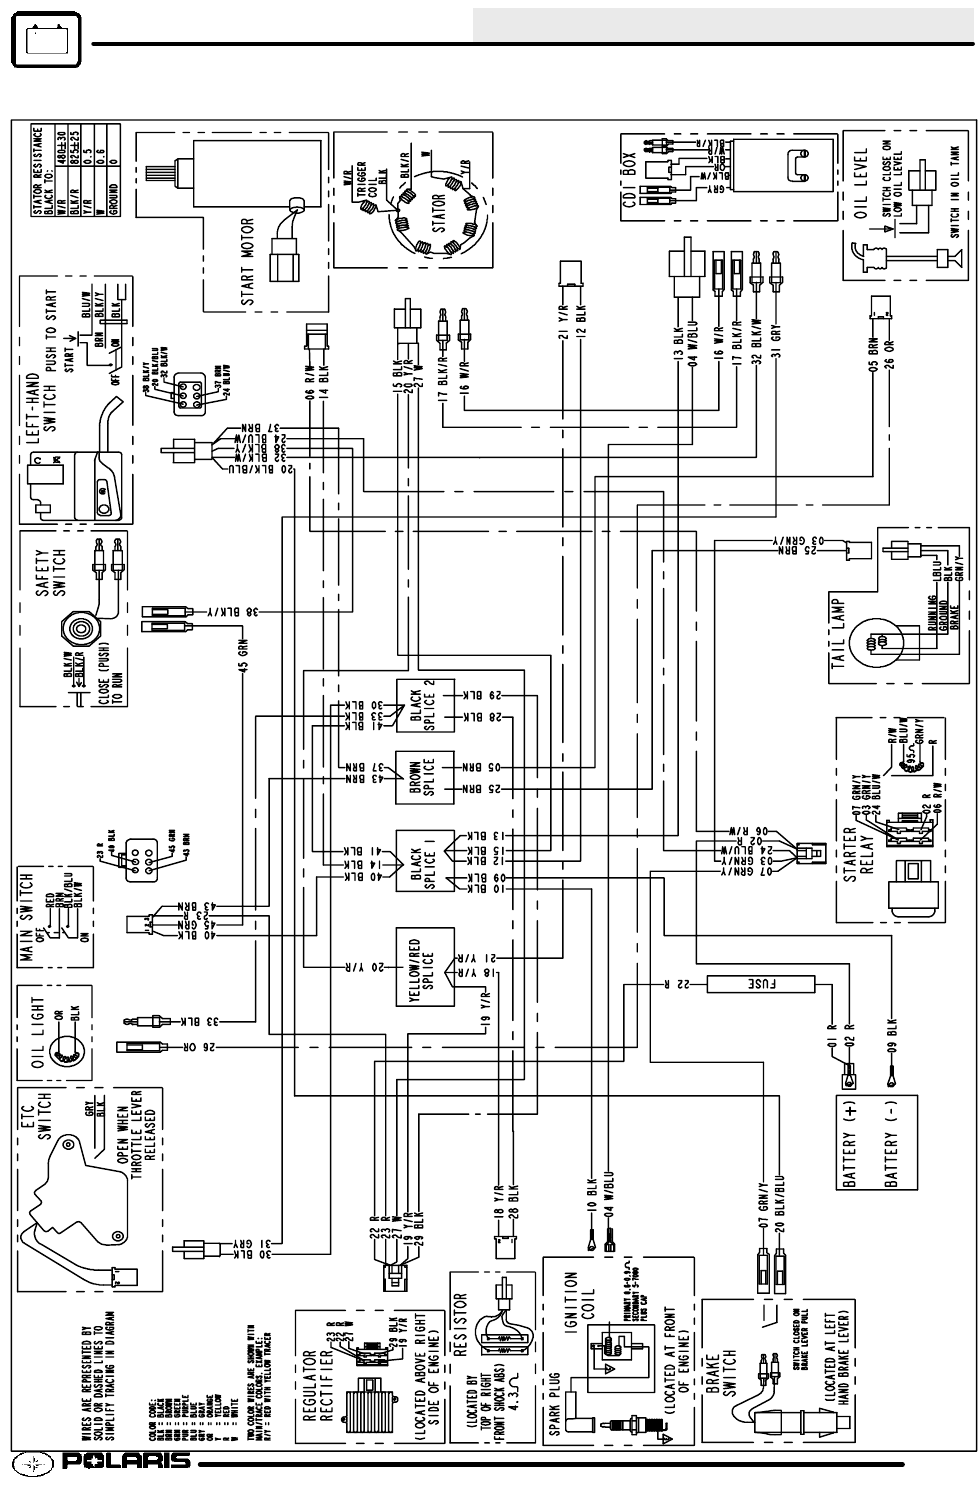 medium resolution of 2008 rzr wiring diagram wiring diagram 2008 polaris rzr 800 wiring diagram 2008 polaris wiring diagram